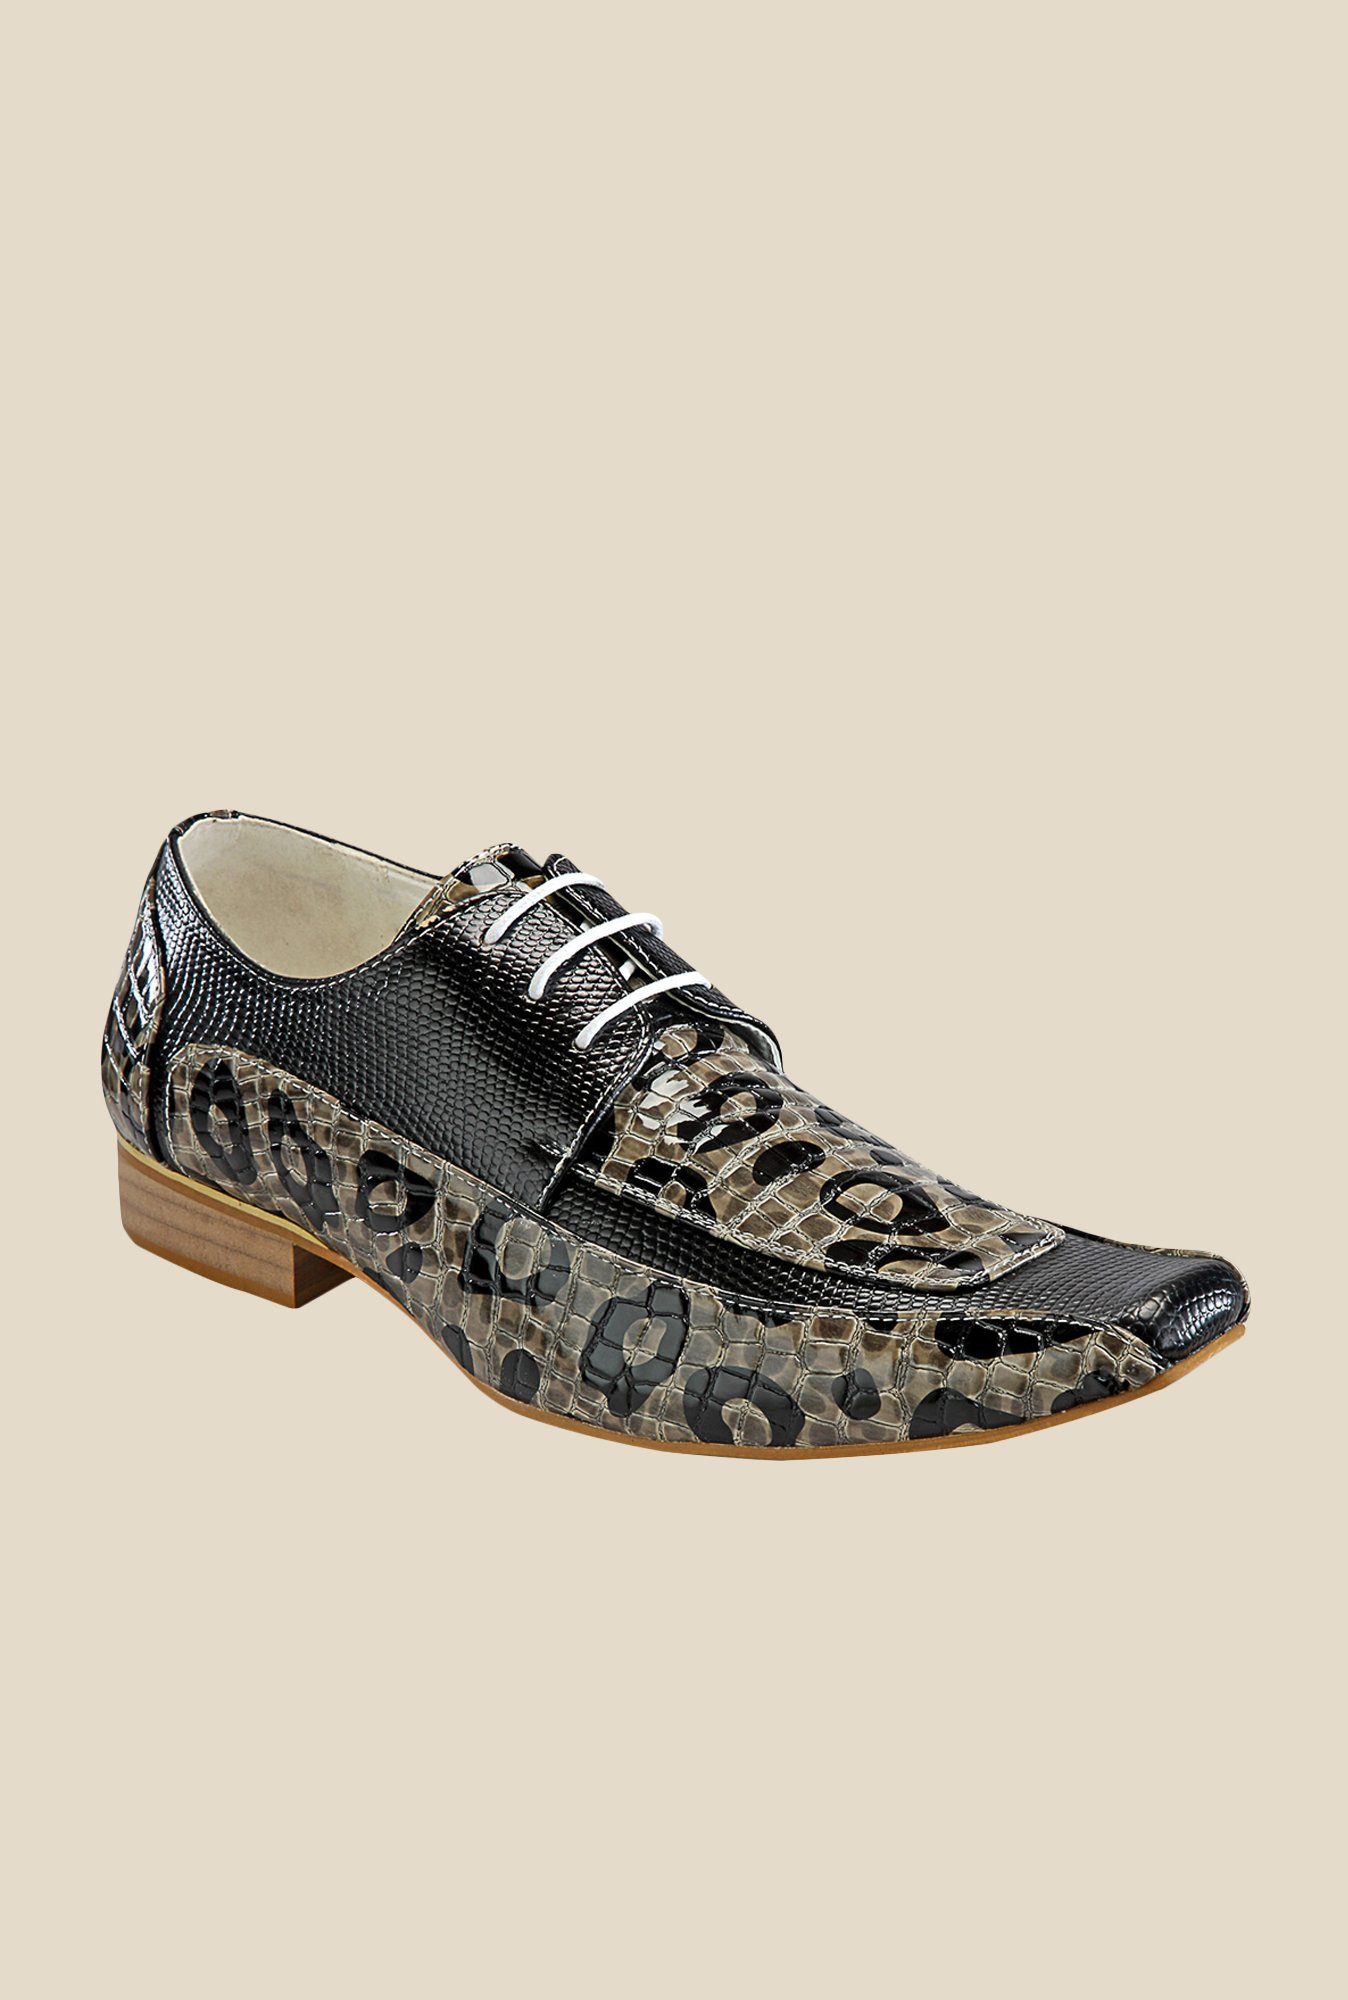 Yepme Black & Beige Derby Shoes